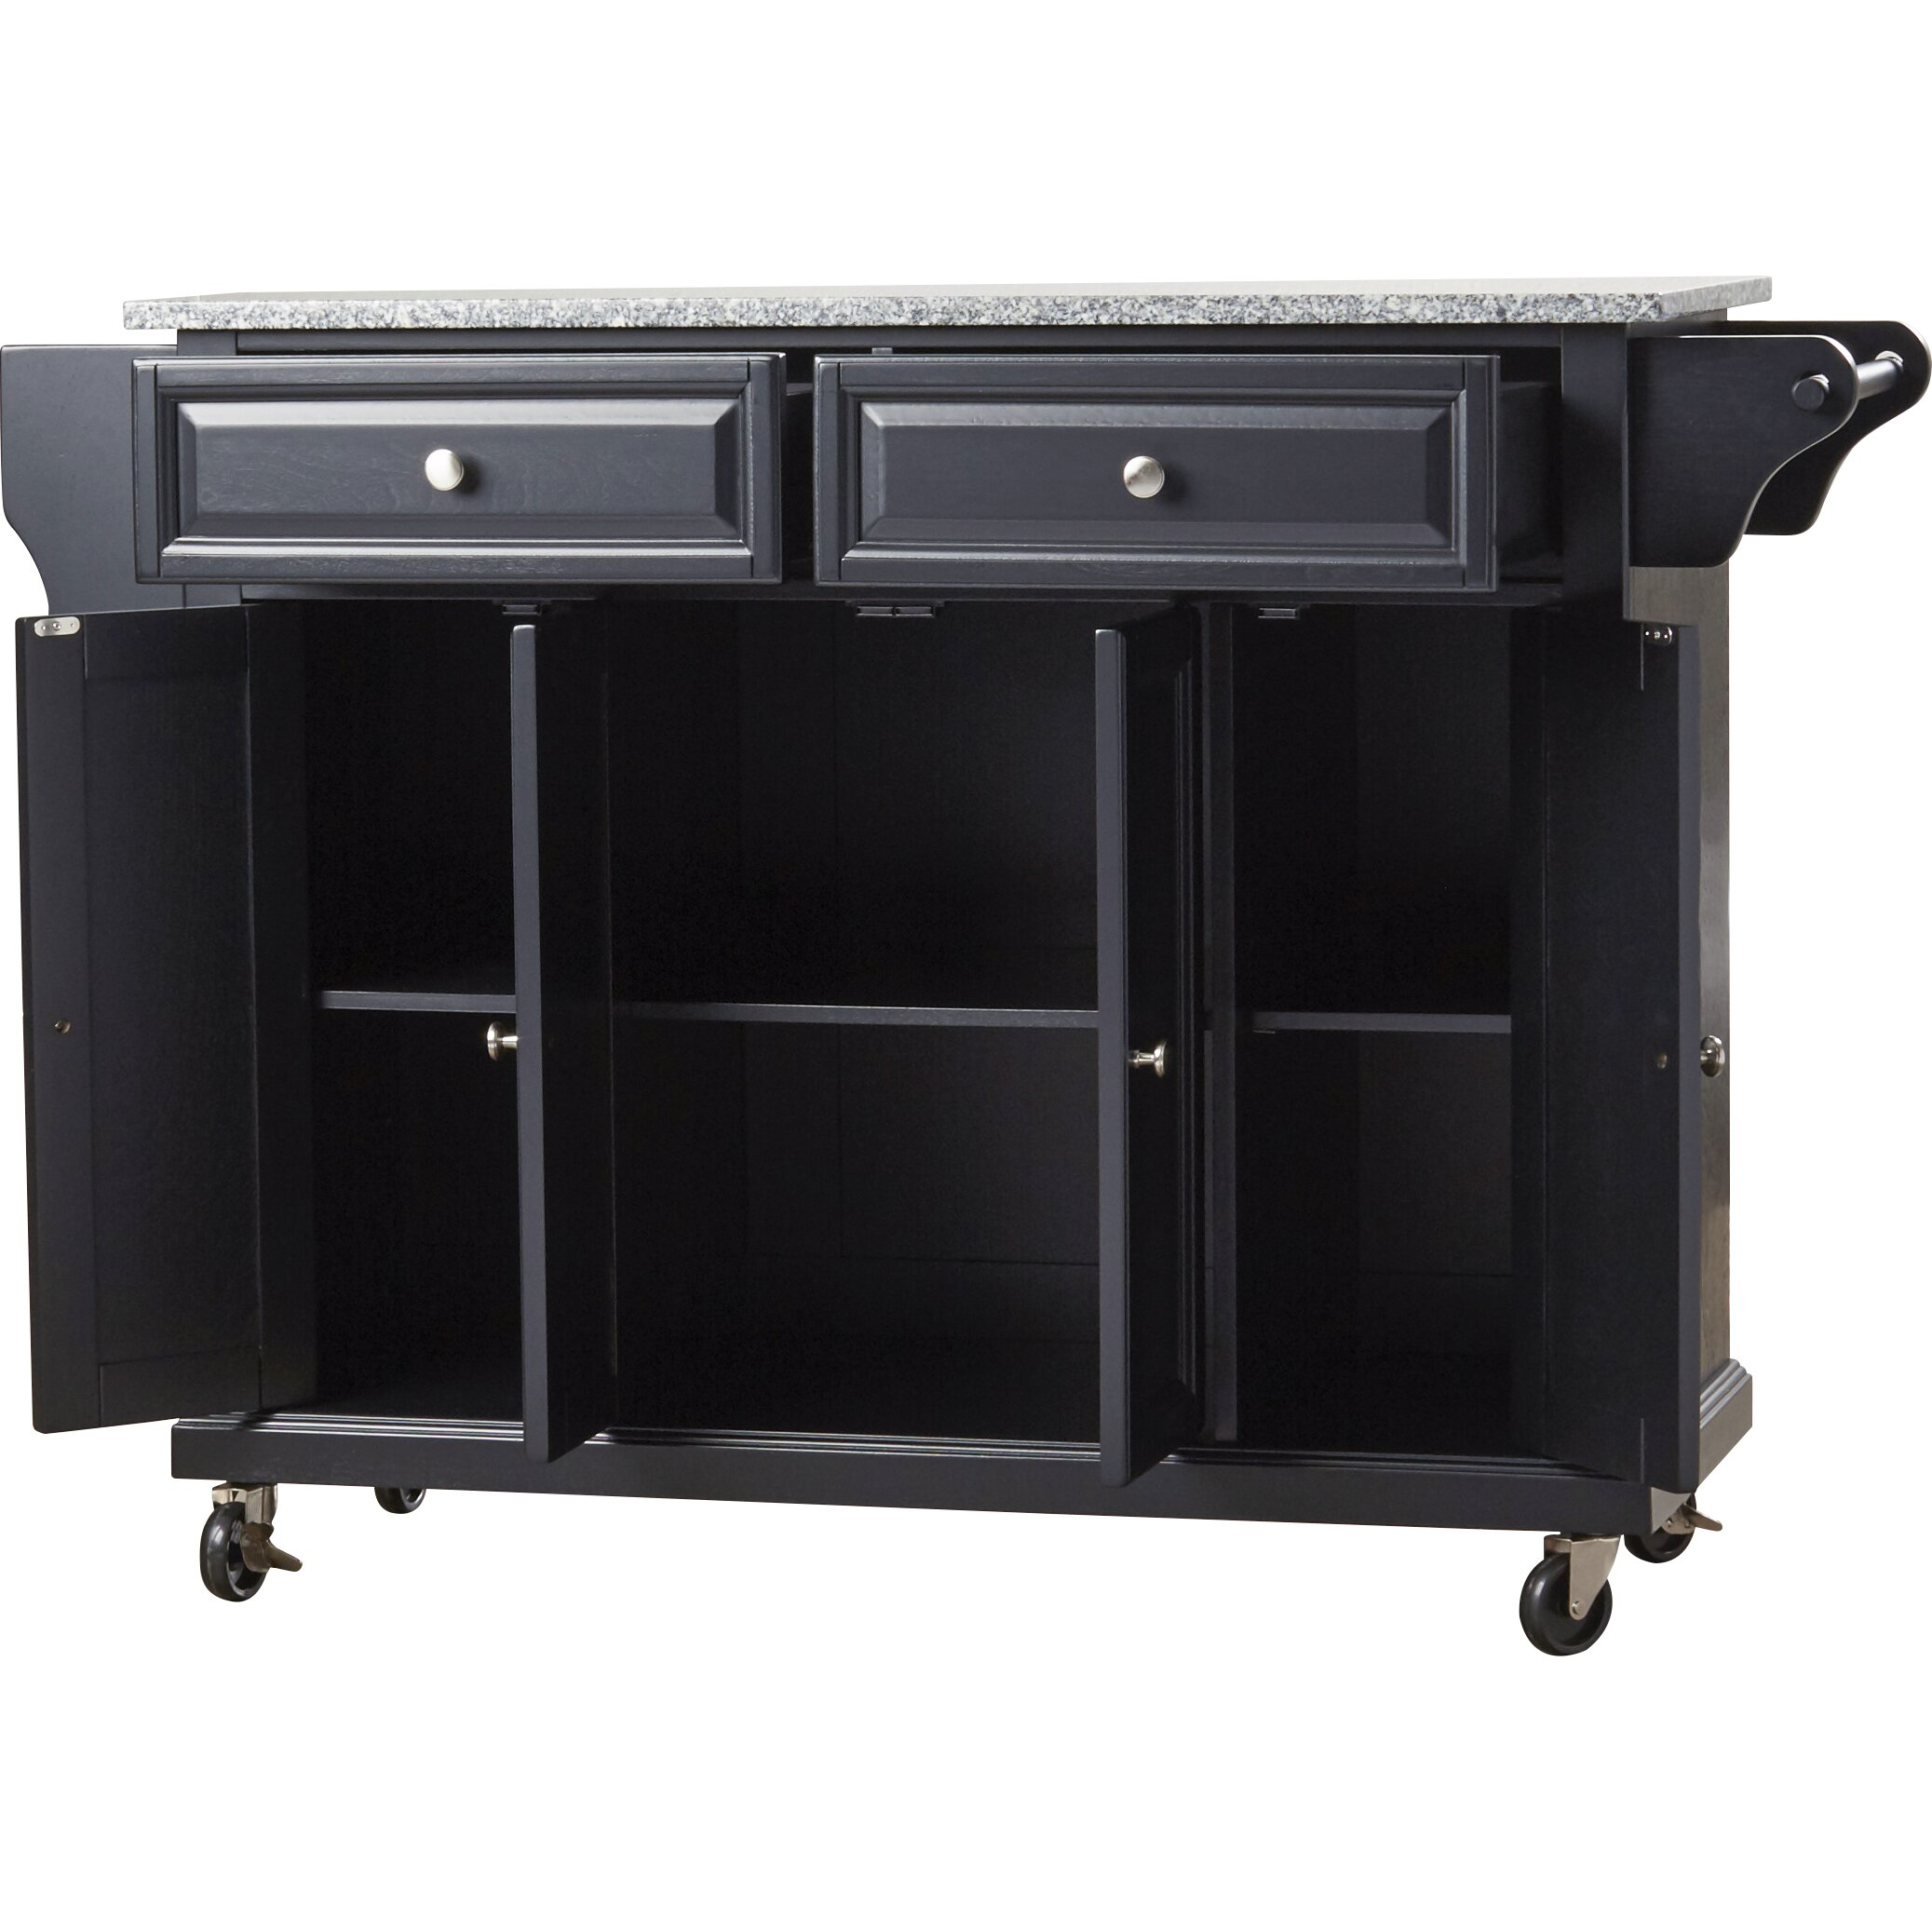 Go Home Black Industrial Kitchen Cart At Lowes Com: Darby Home Co Pottstown Kitchen Cart/Island With Granite